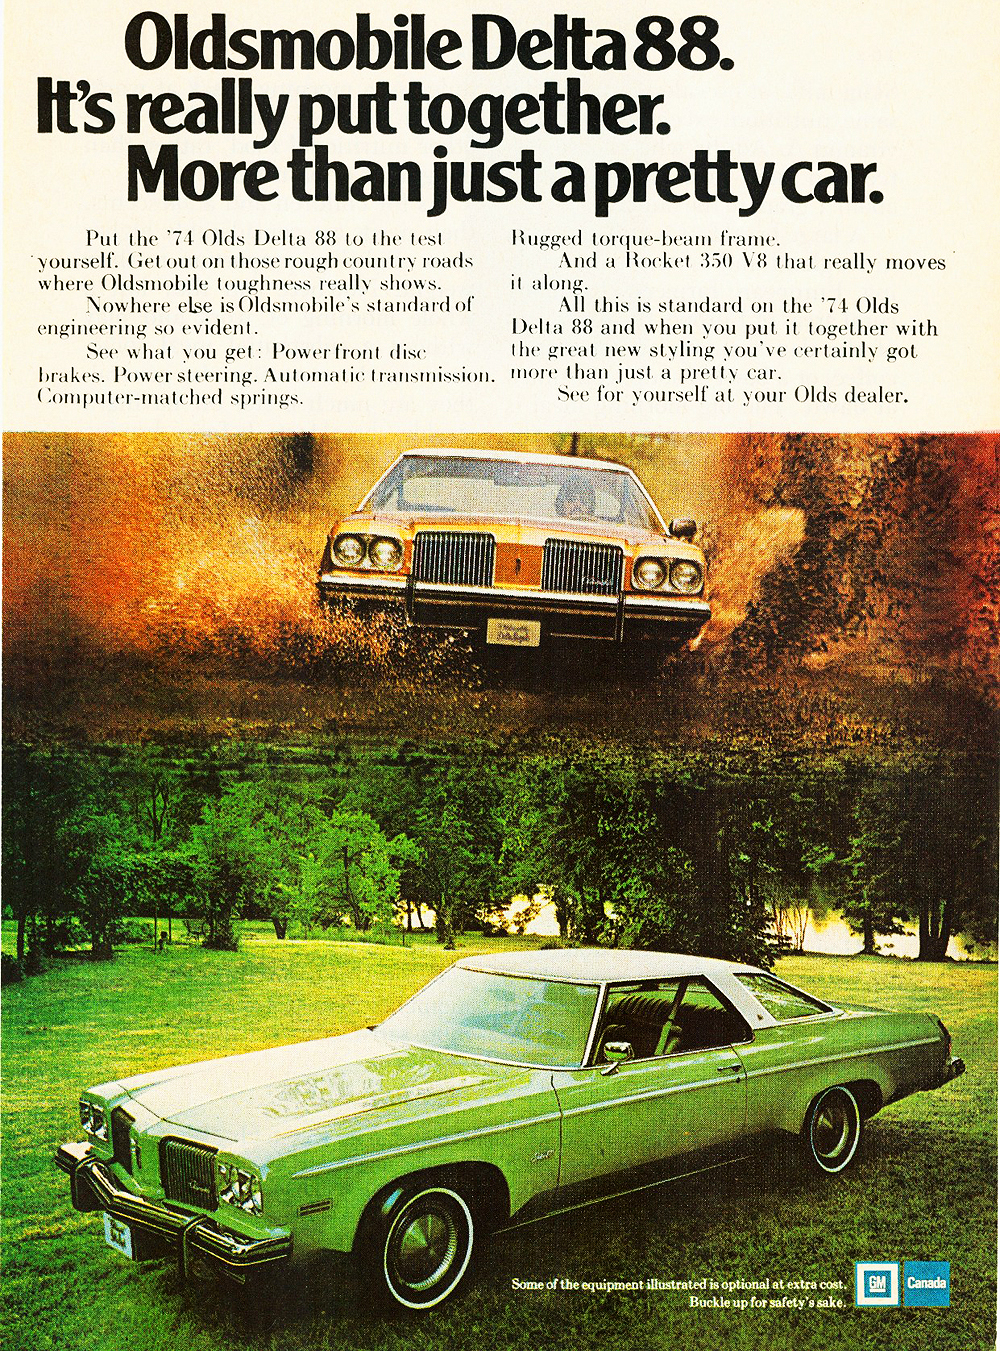 1974 Oldsmobile Delta 88 Ad Classic Cars Today Online